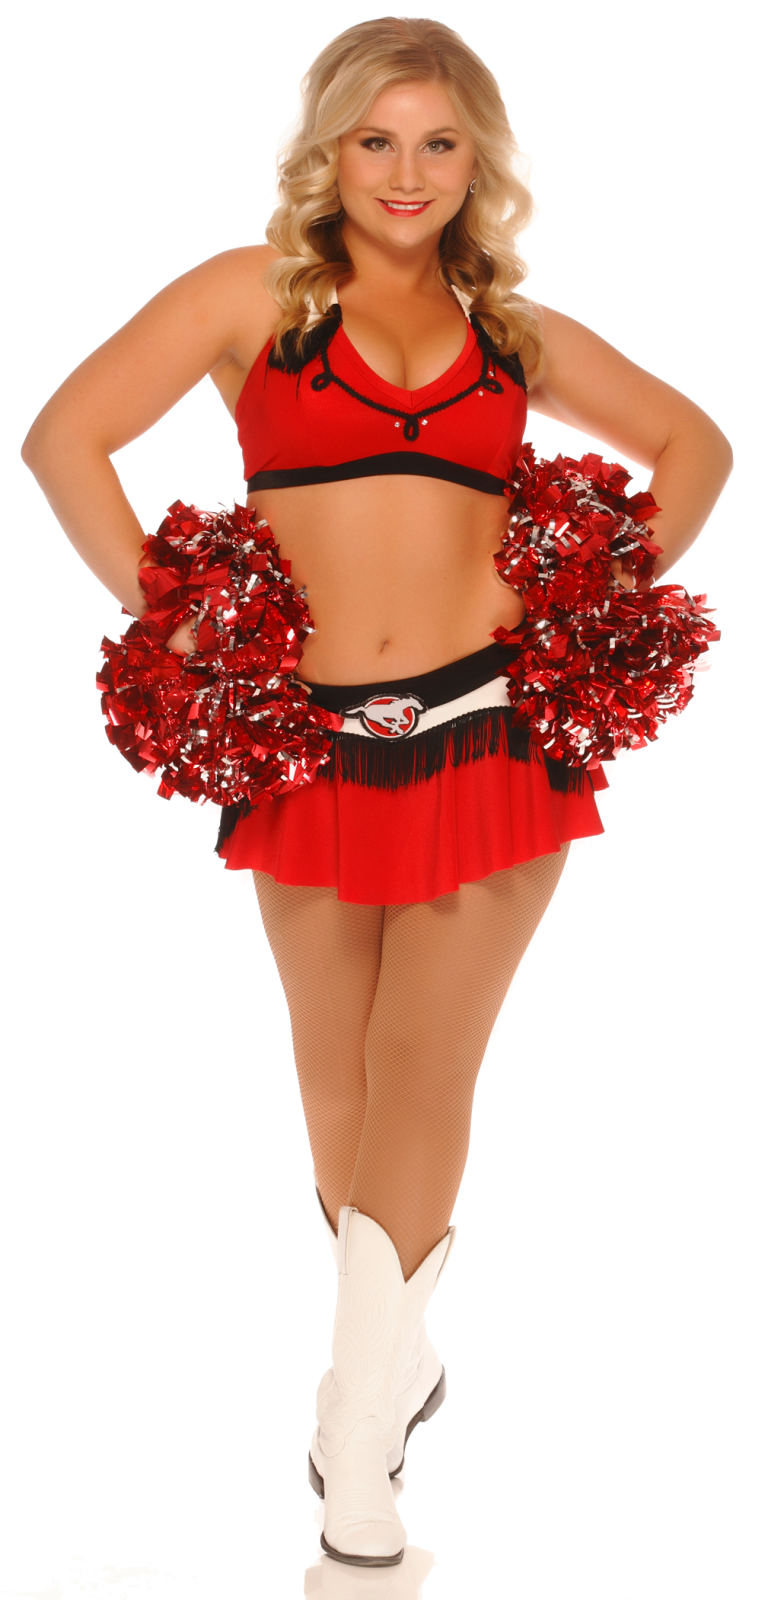 Cheerleader PNG Picture - Cheerleader HD PNG